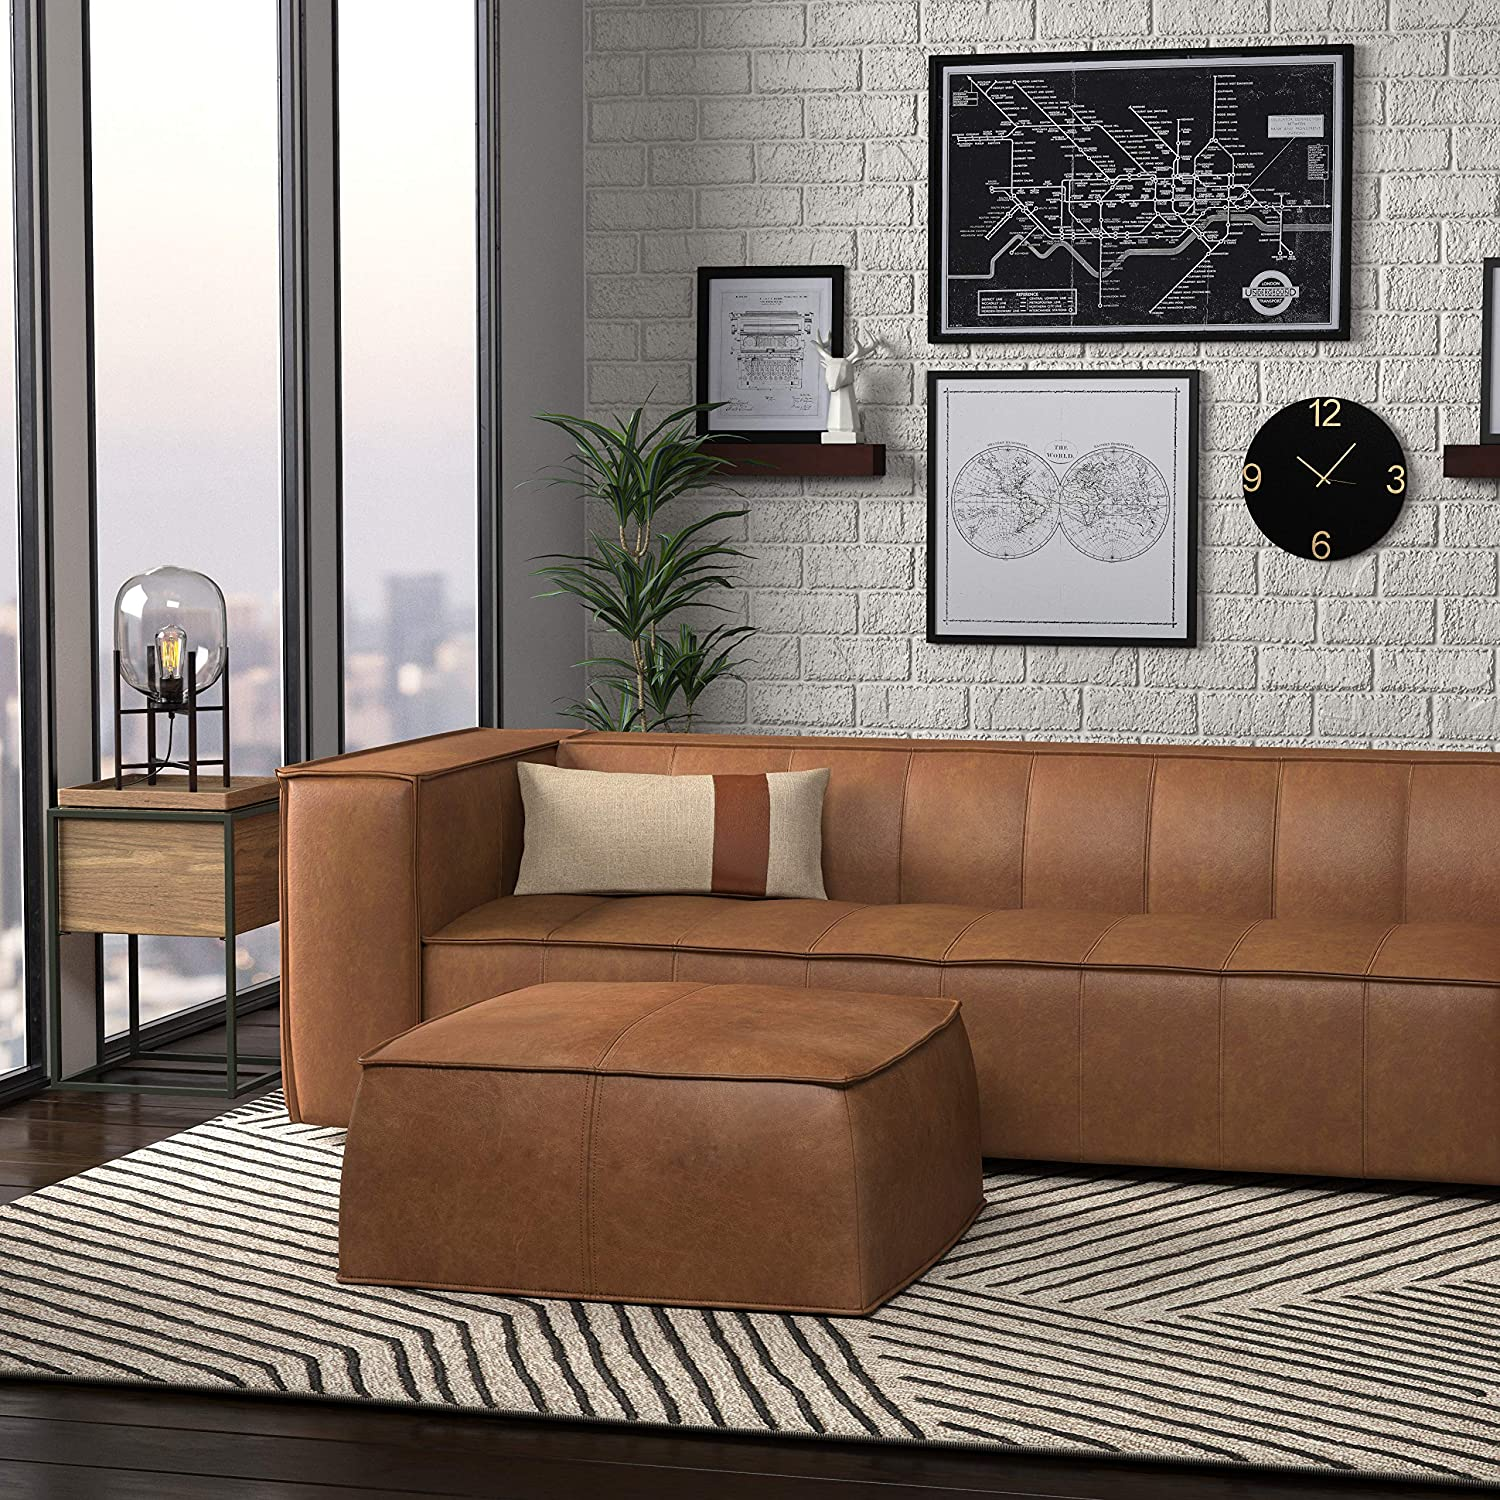 Terrific Details About Rivet Aiden Tufted Mid Century Modern Leather Bench Sectional Couch Sofa 74W Gmtry Best Dining Table And Chair Ideas Images Gmtryco